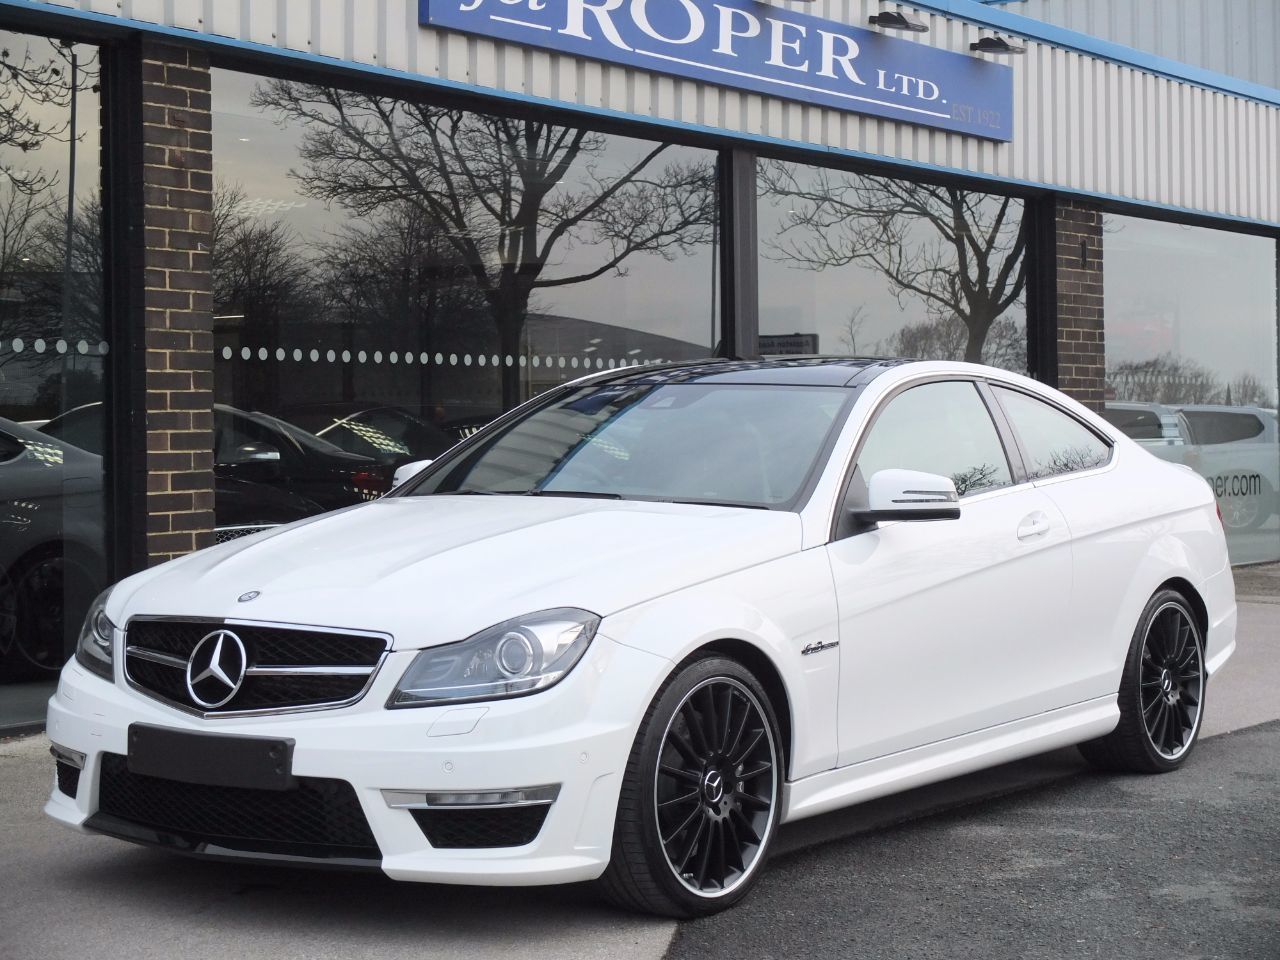 Mercedes-Benz C Class 6.2 C63 AMG Coupe MCT AMG Speedshift Auto Coupe Petrol Polar WhiteMercedes-Benz C Class 6.2 C63 AMG Coupe MCT AMG Speedshift Auto Coupe Petrol Polar White at fa Roper Ltd Bradford